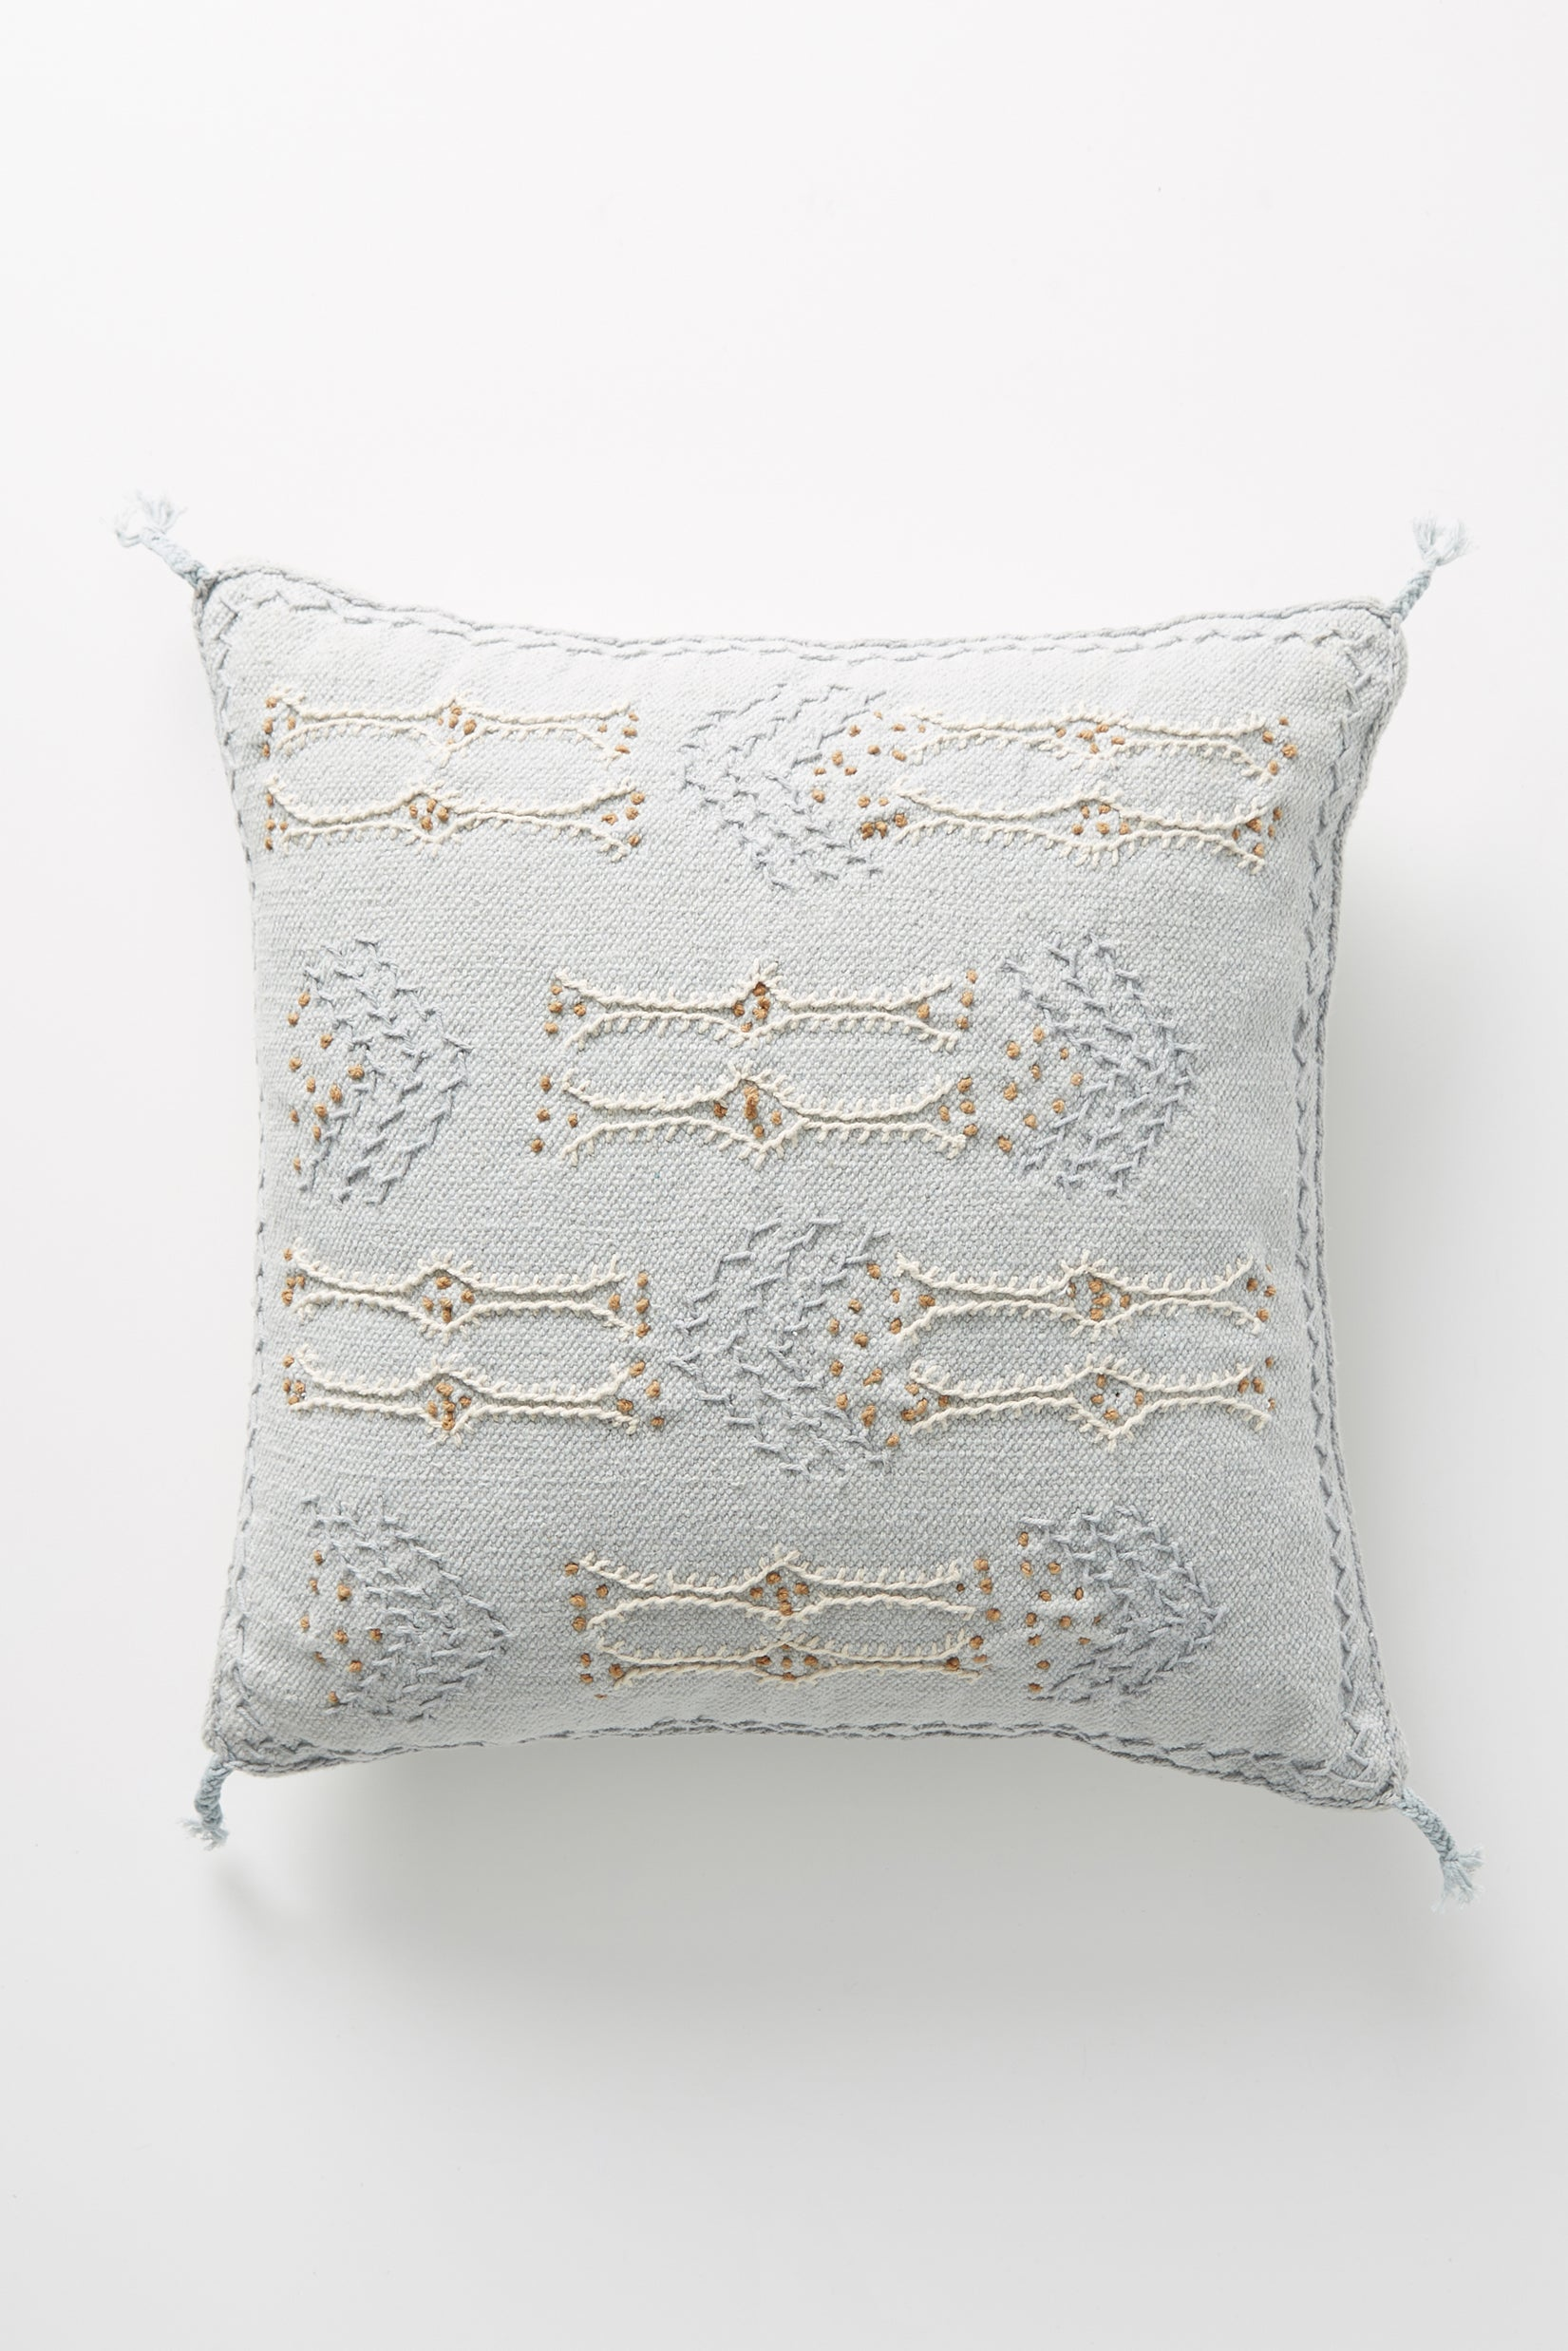 Embroidered Sadie Pillow $48 (1)